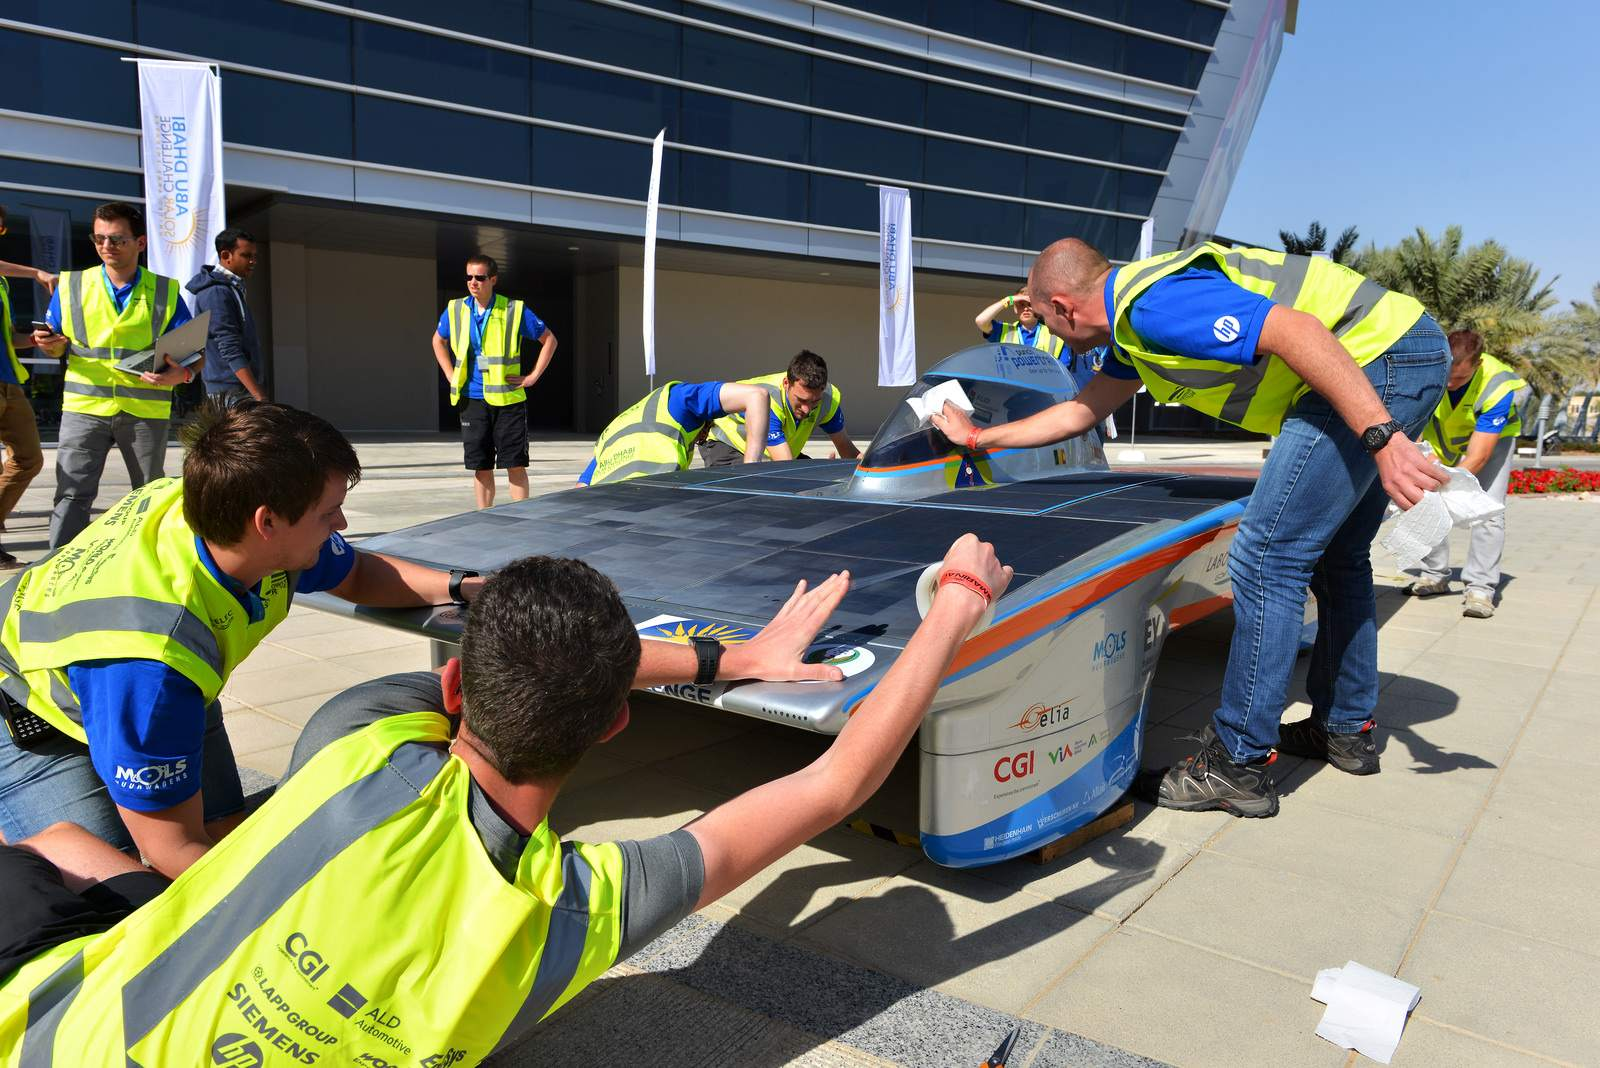 solar challenge7 Abu Dhabi Solar Challenge   Victory for Michigan University Team